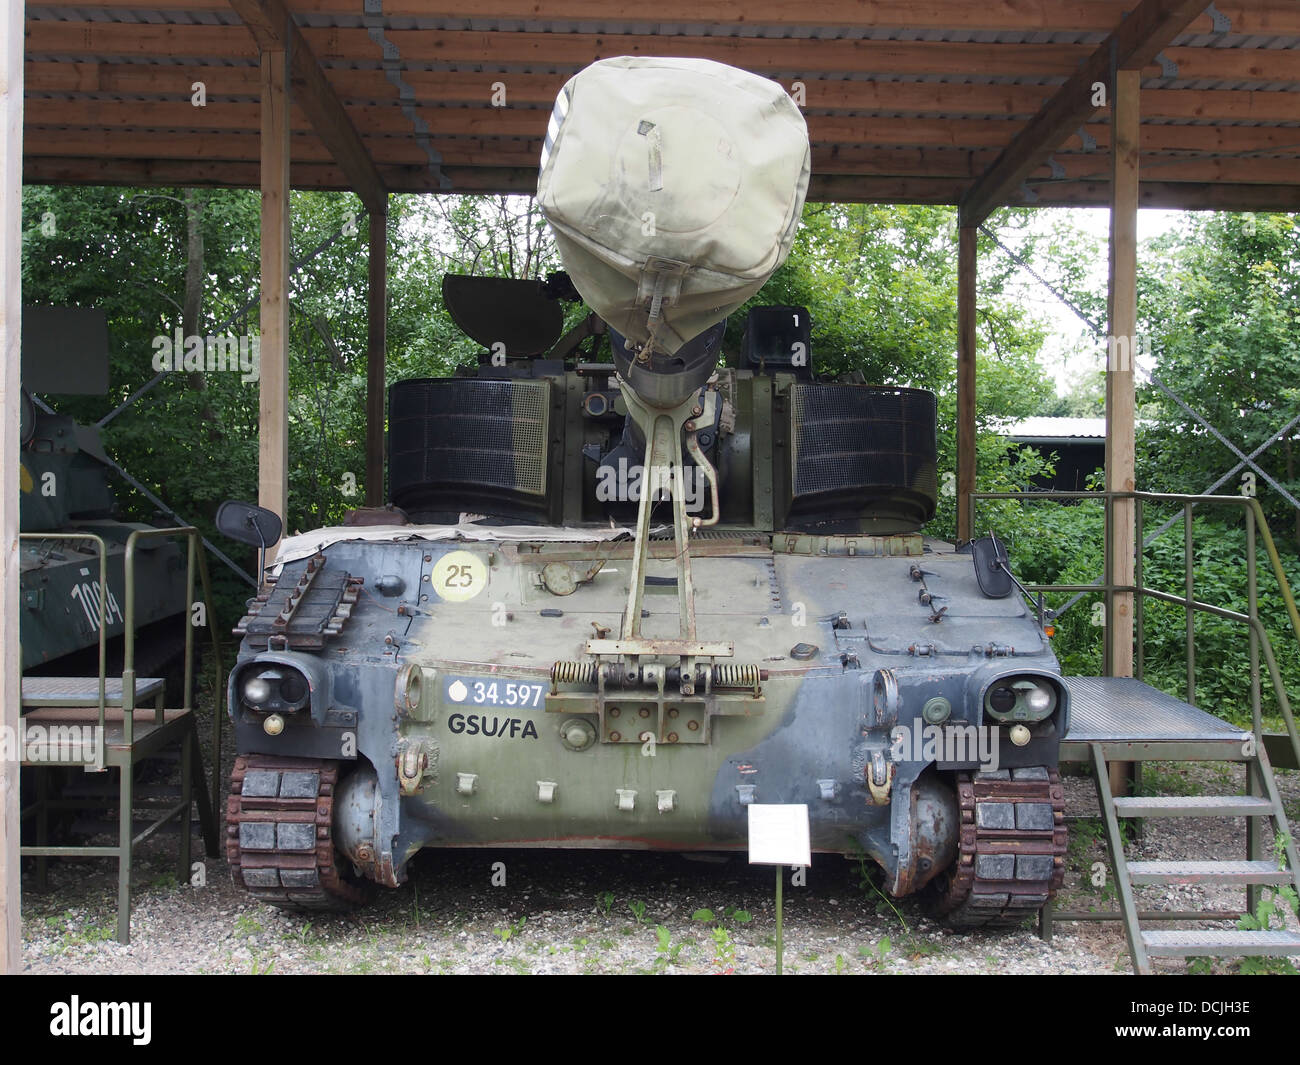 M109 front view, photographed at the Aalborg Forsvars- og Garnisonsmuseum - Stock Image